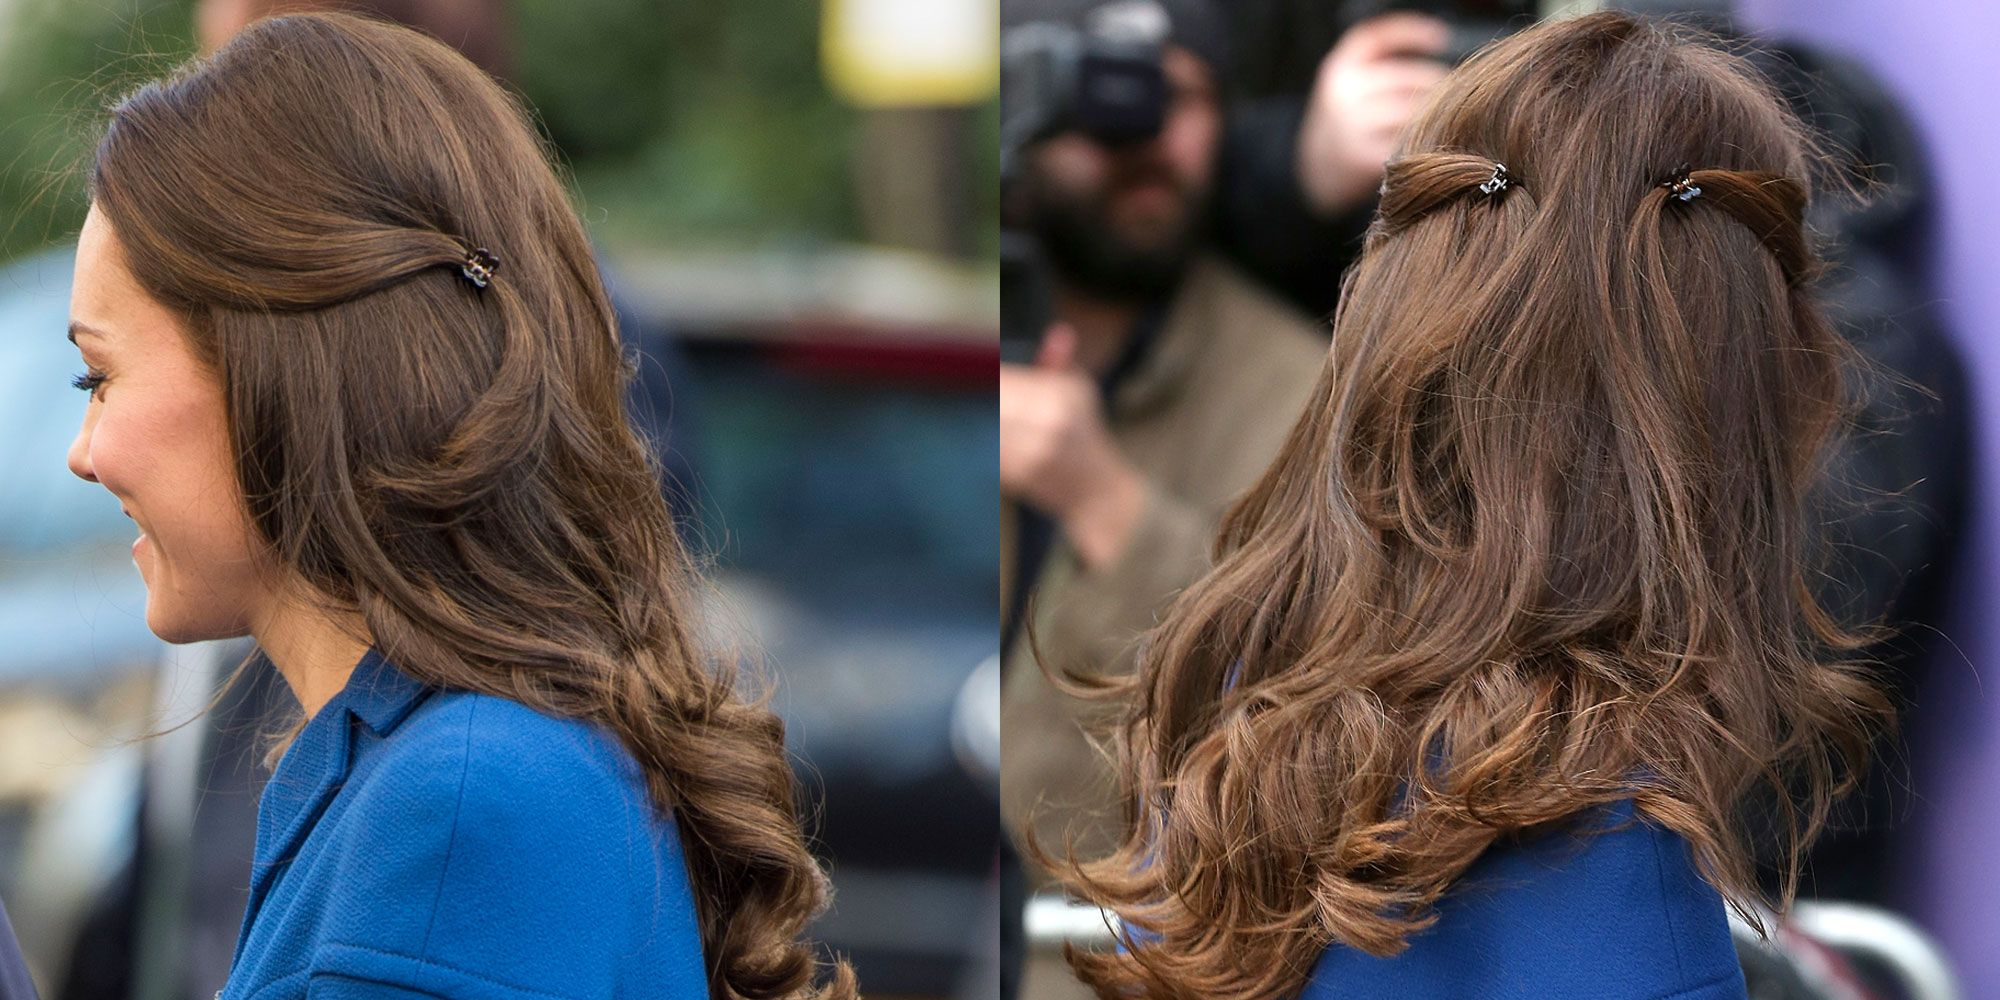 Kate Middleton, We Love You, But Please Stop Wearing Hair Clips